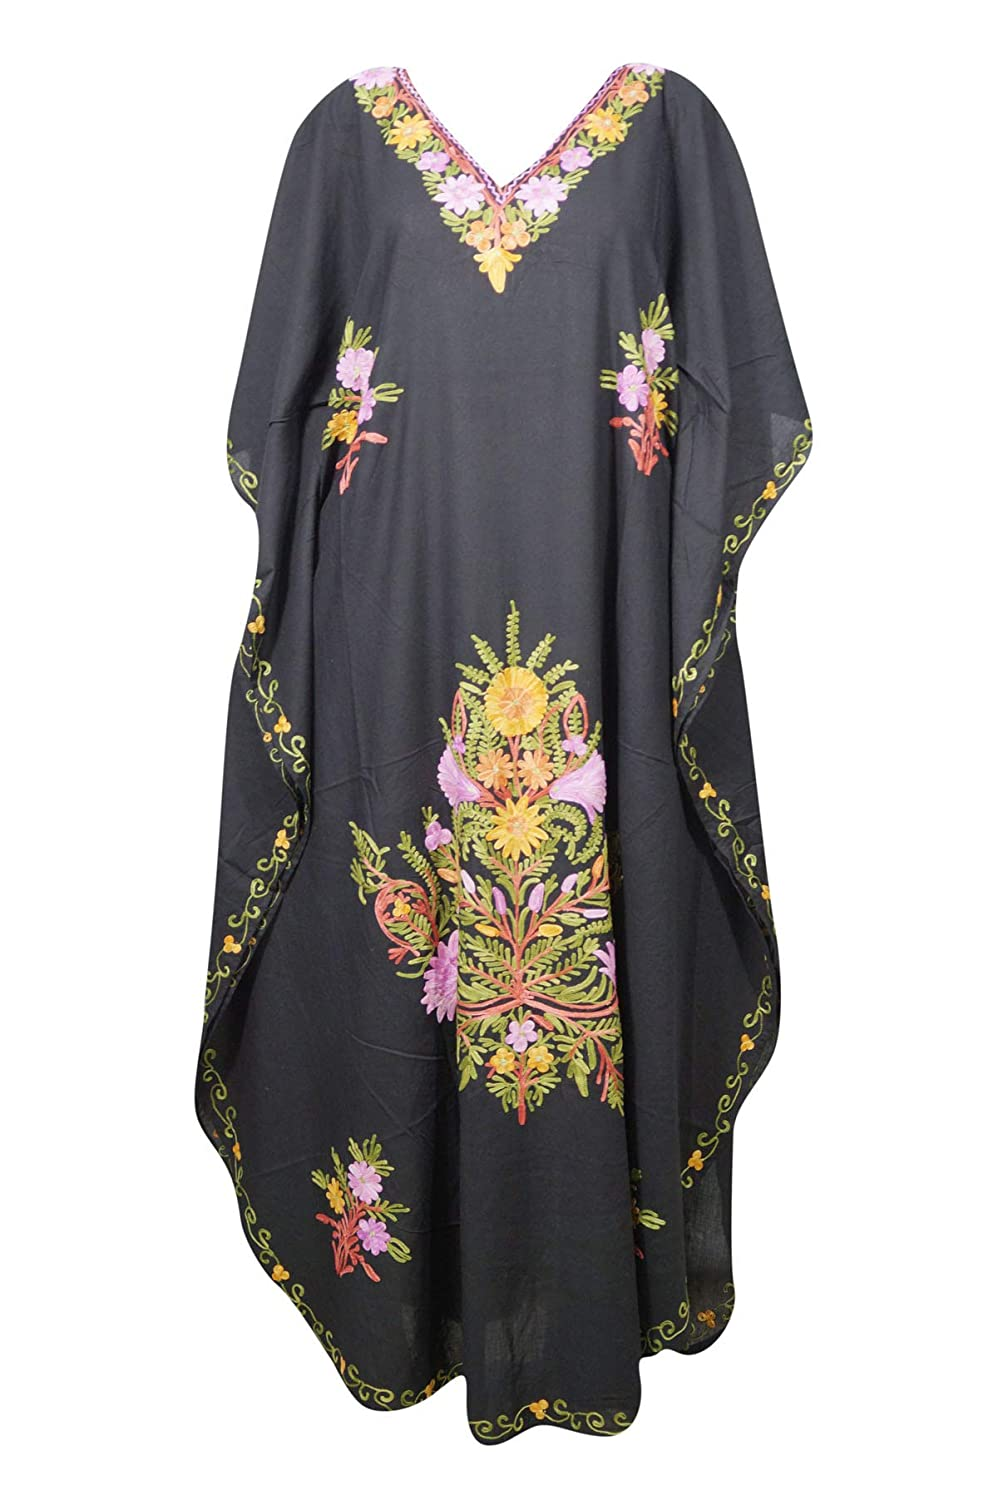 Mogul Interior Womens Caftan Maxi Dress Black Embroidered Kaftan One Size caf-59